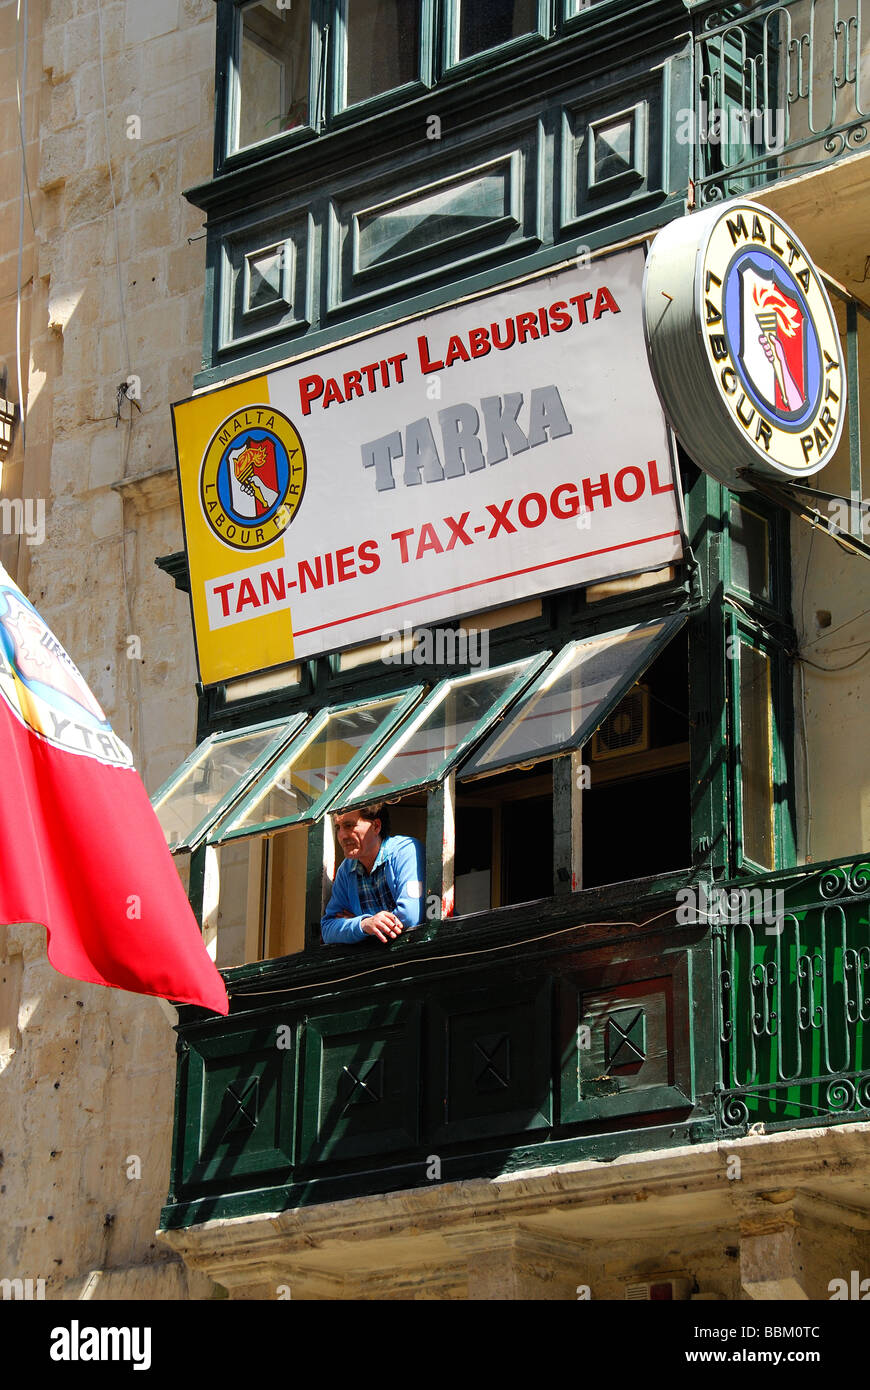 MALTA. A man at the window of the Malta Labour Party headquarters on Republic Street in Valletta. 2009. - Stock Image